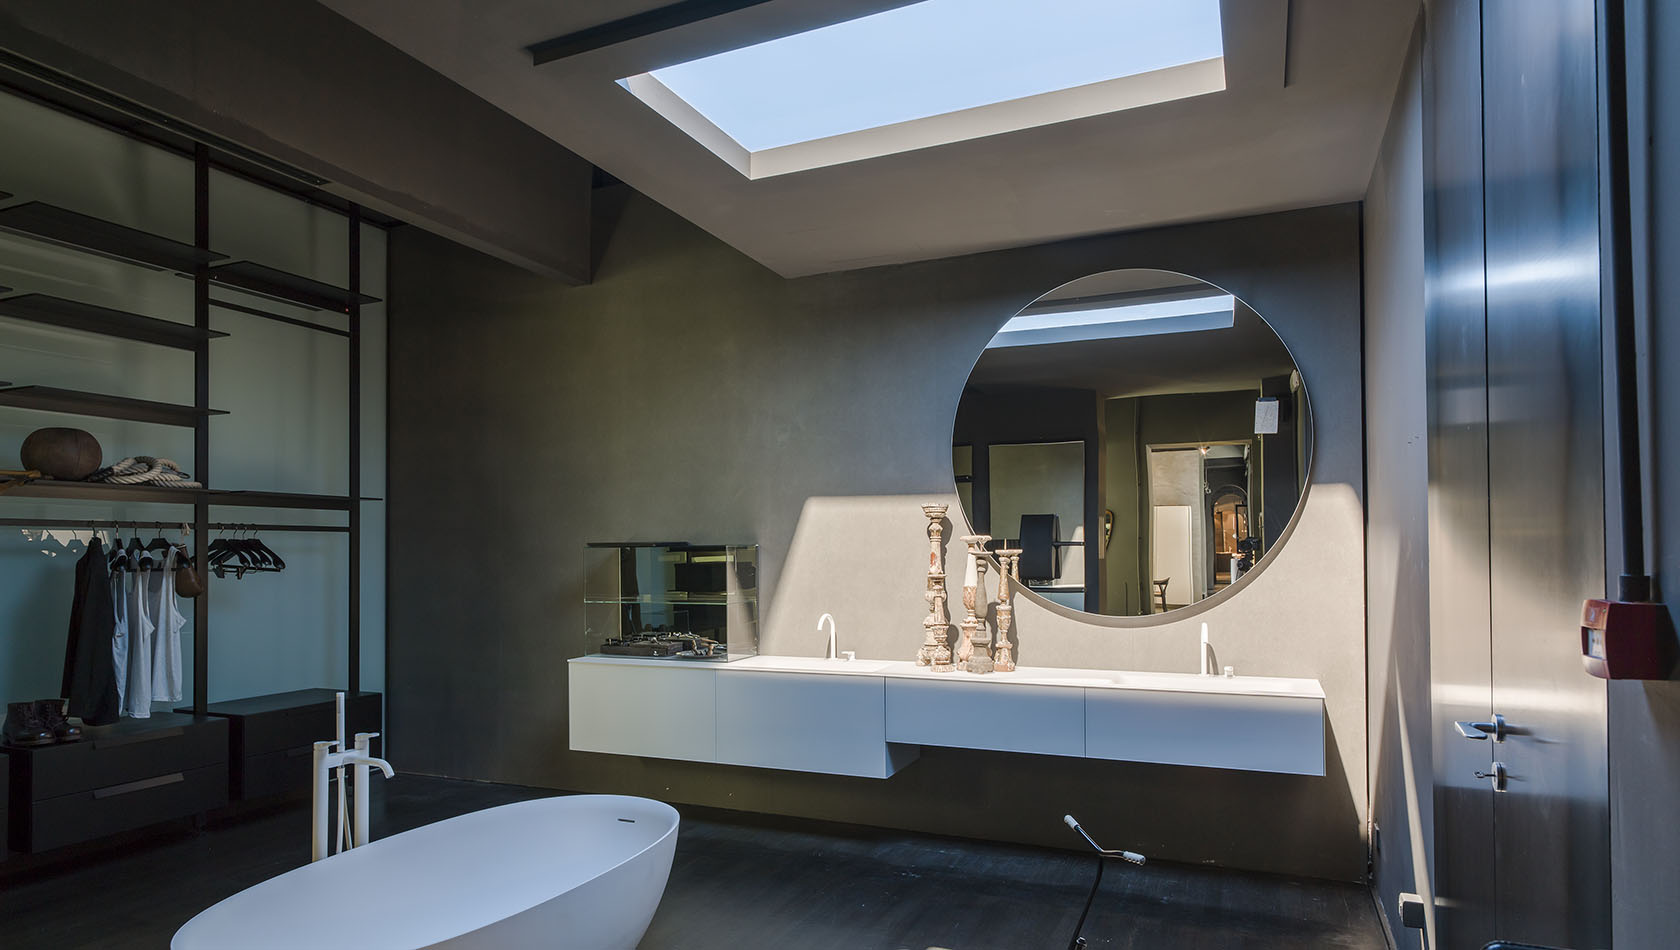 CoeLux Sun And Sky Into The Bathroom Environment Of Boffis - Boffi bathroom